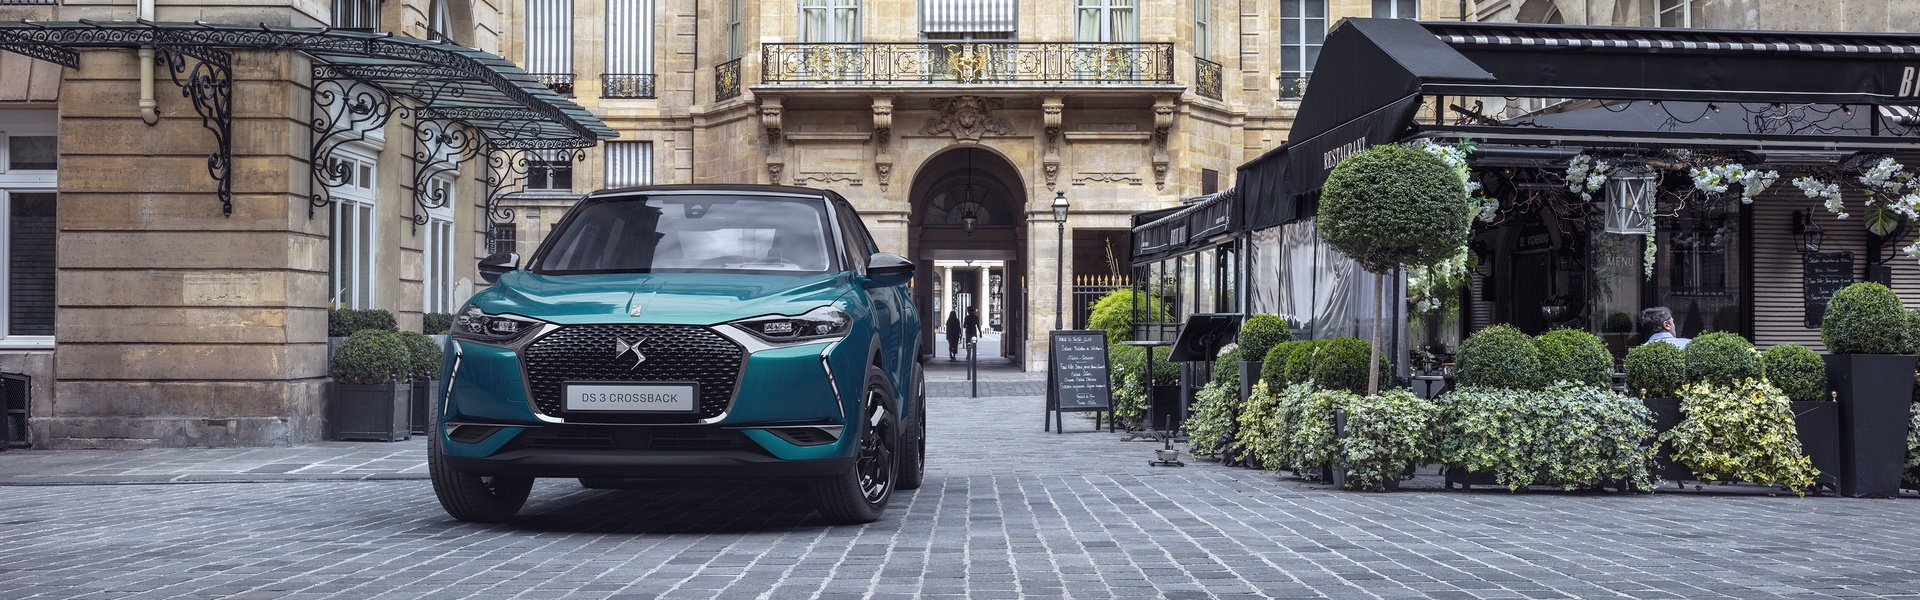 ds3-crossback-1.jpg